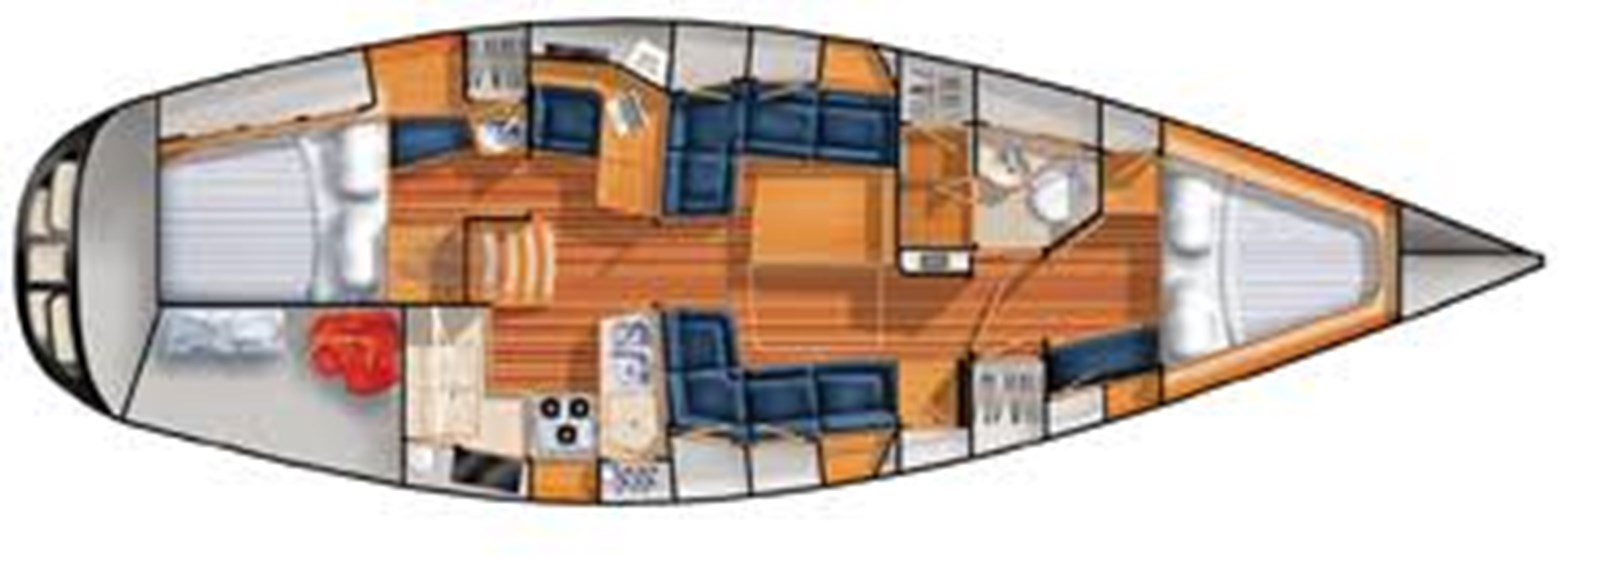 426 layout 2006 SABRE YACHTS Sabre 426 Cruising Sailboat 2858226